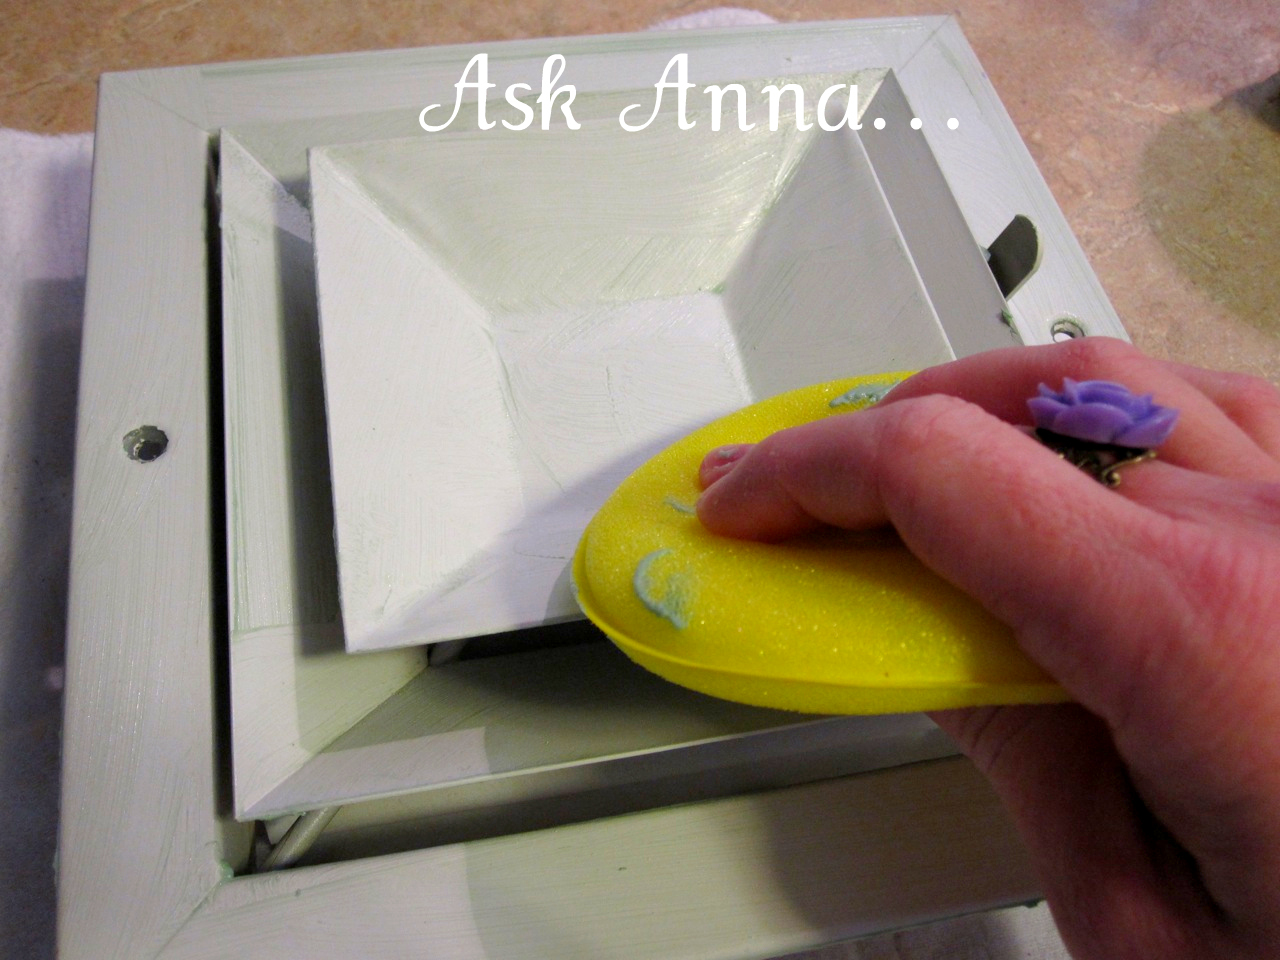 How to clean vents - Ask Anna